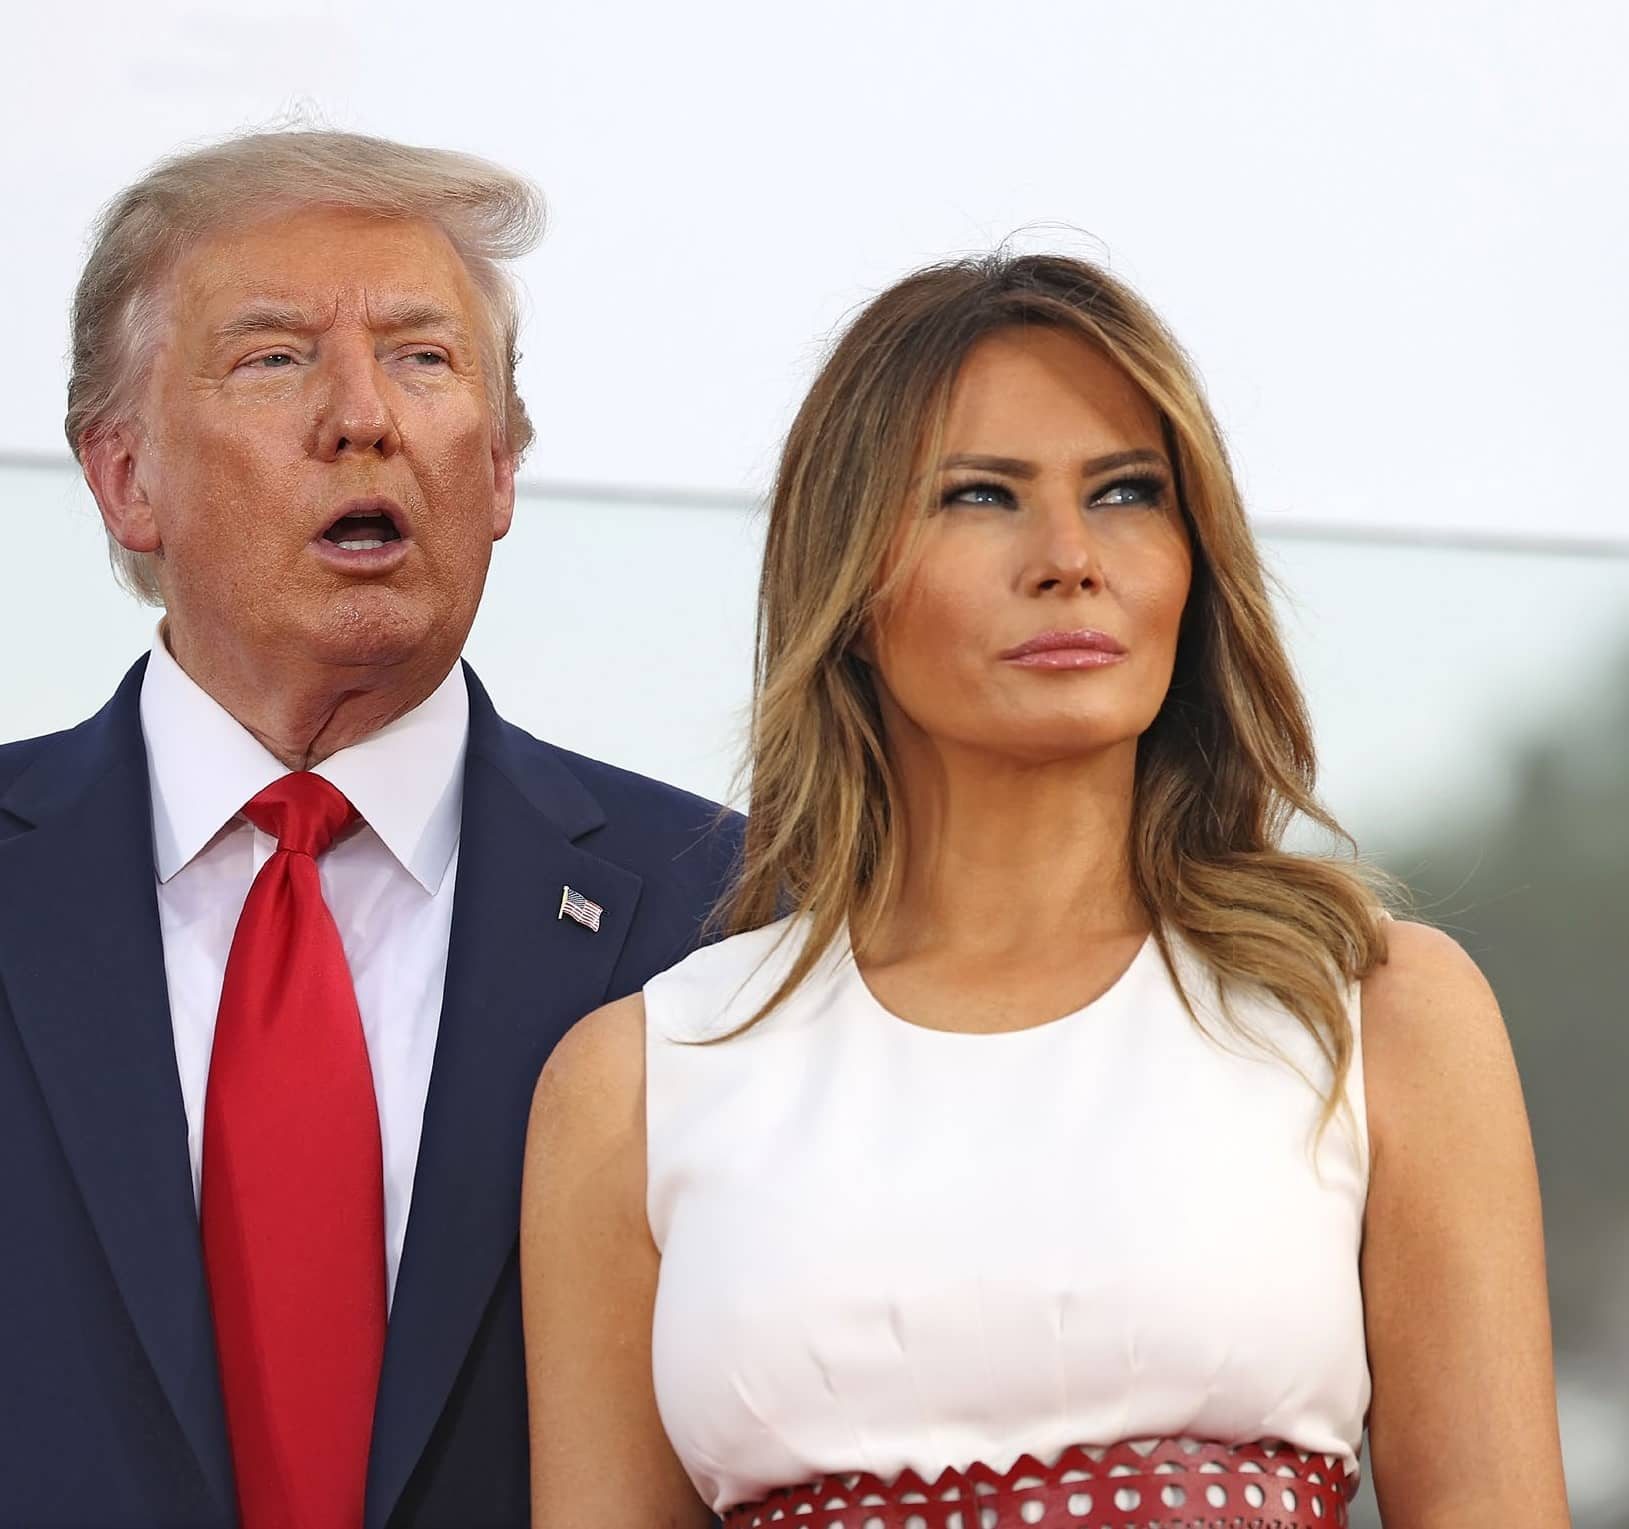 Melania Trump: The Truth About Her Marriage